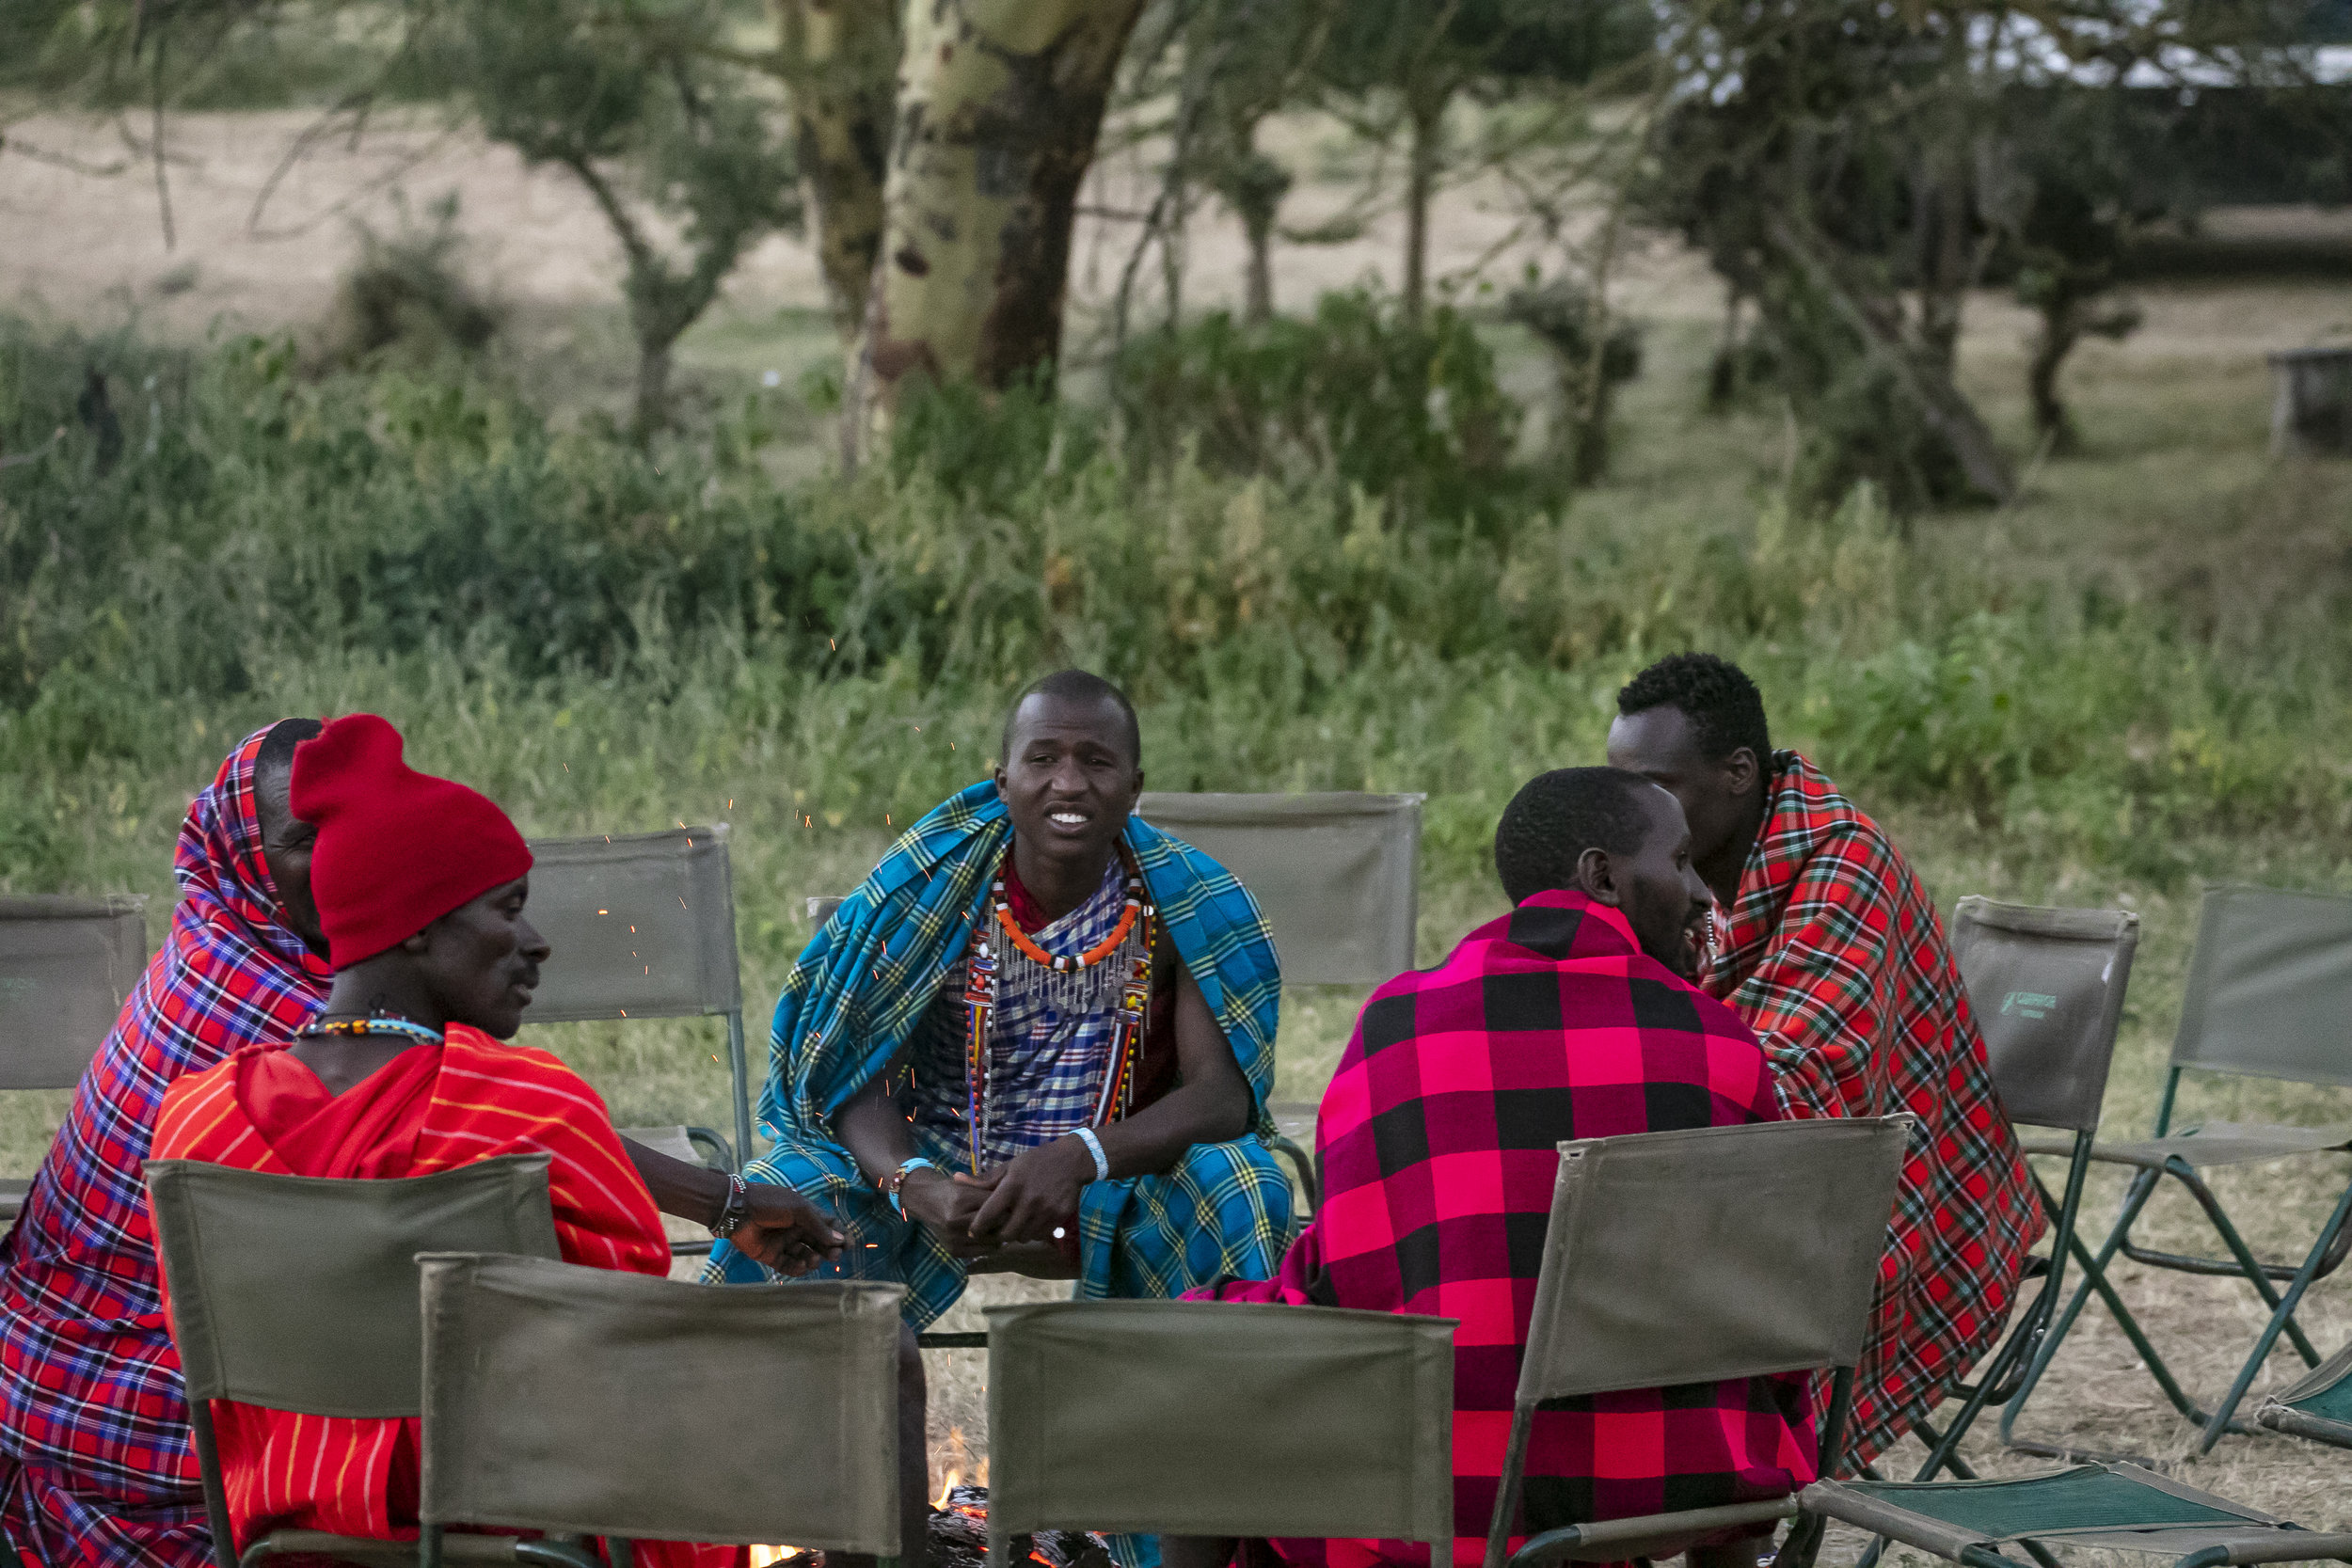 African Adventure - 22 July '18 - Lake Naivasha camp to the Loita Hills Maasai Village - 042.JPG